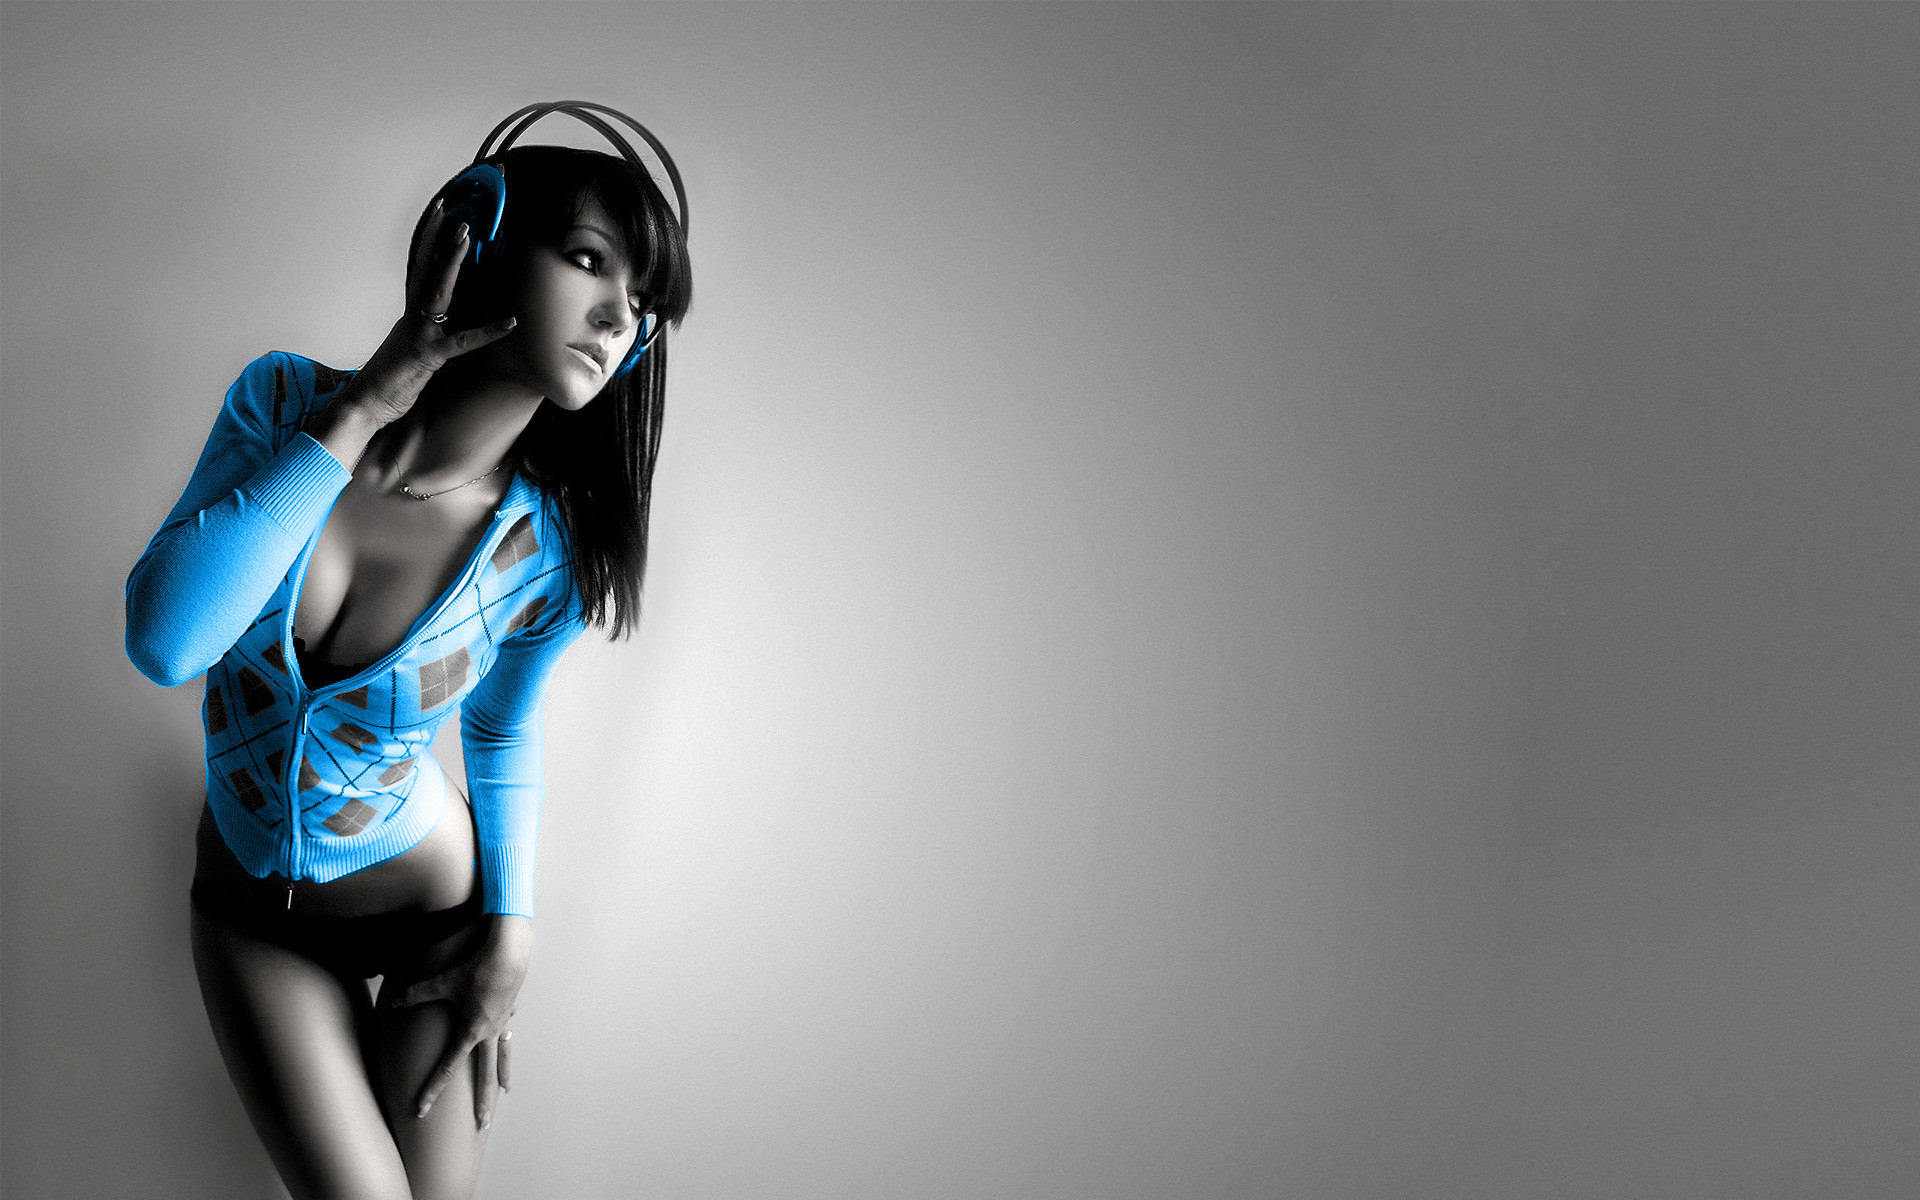 Music Girl Wallpaper Music, Girl, Electric, Blue, Looking - Music Girl Wallpaper 4k , HD Wallpaper & Backgrounds